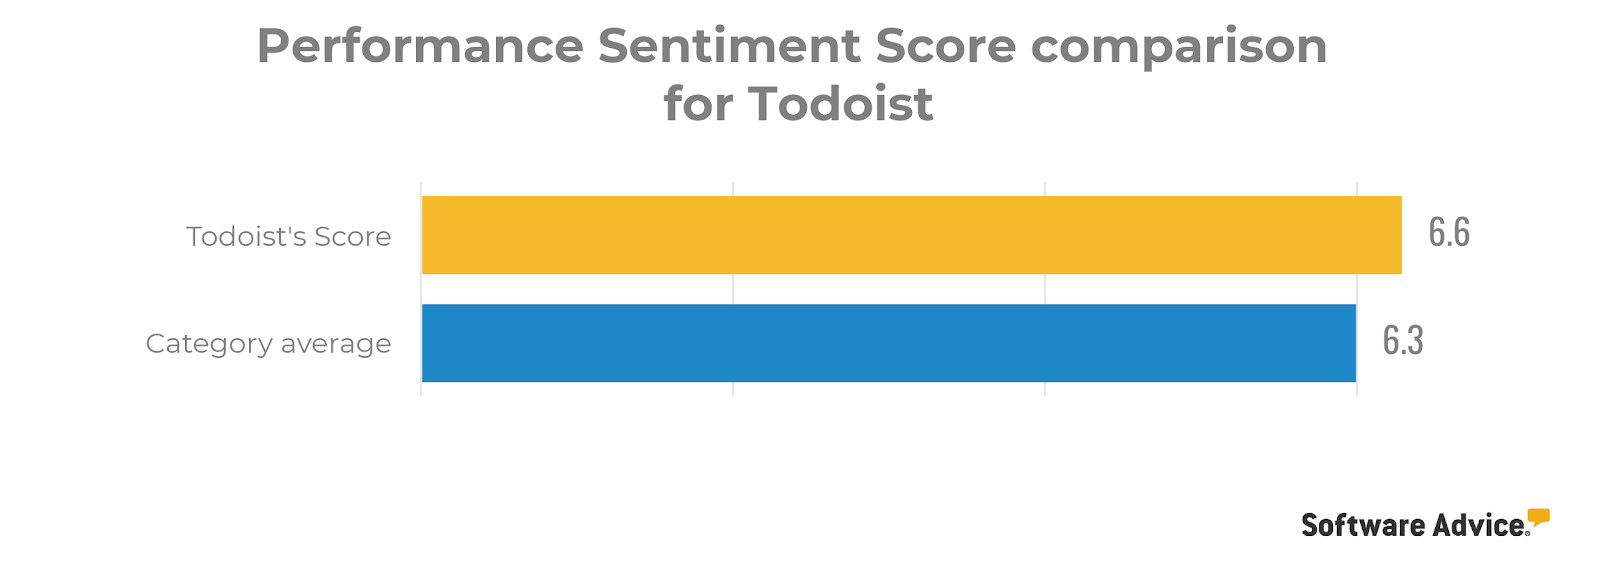 Todoist performance review score